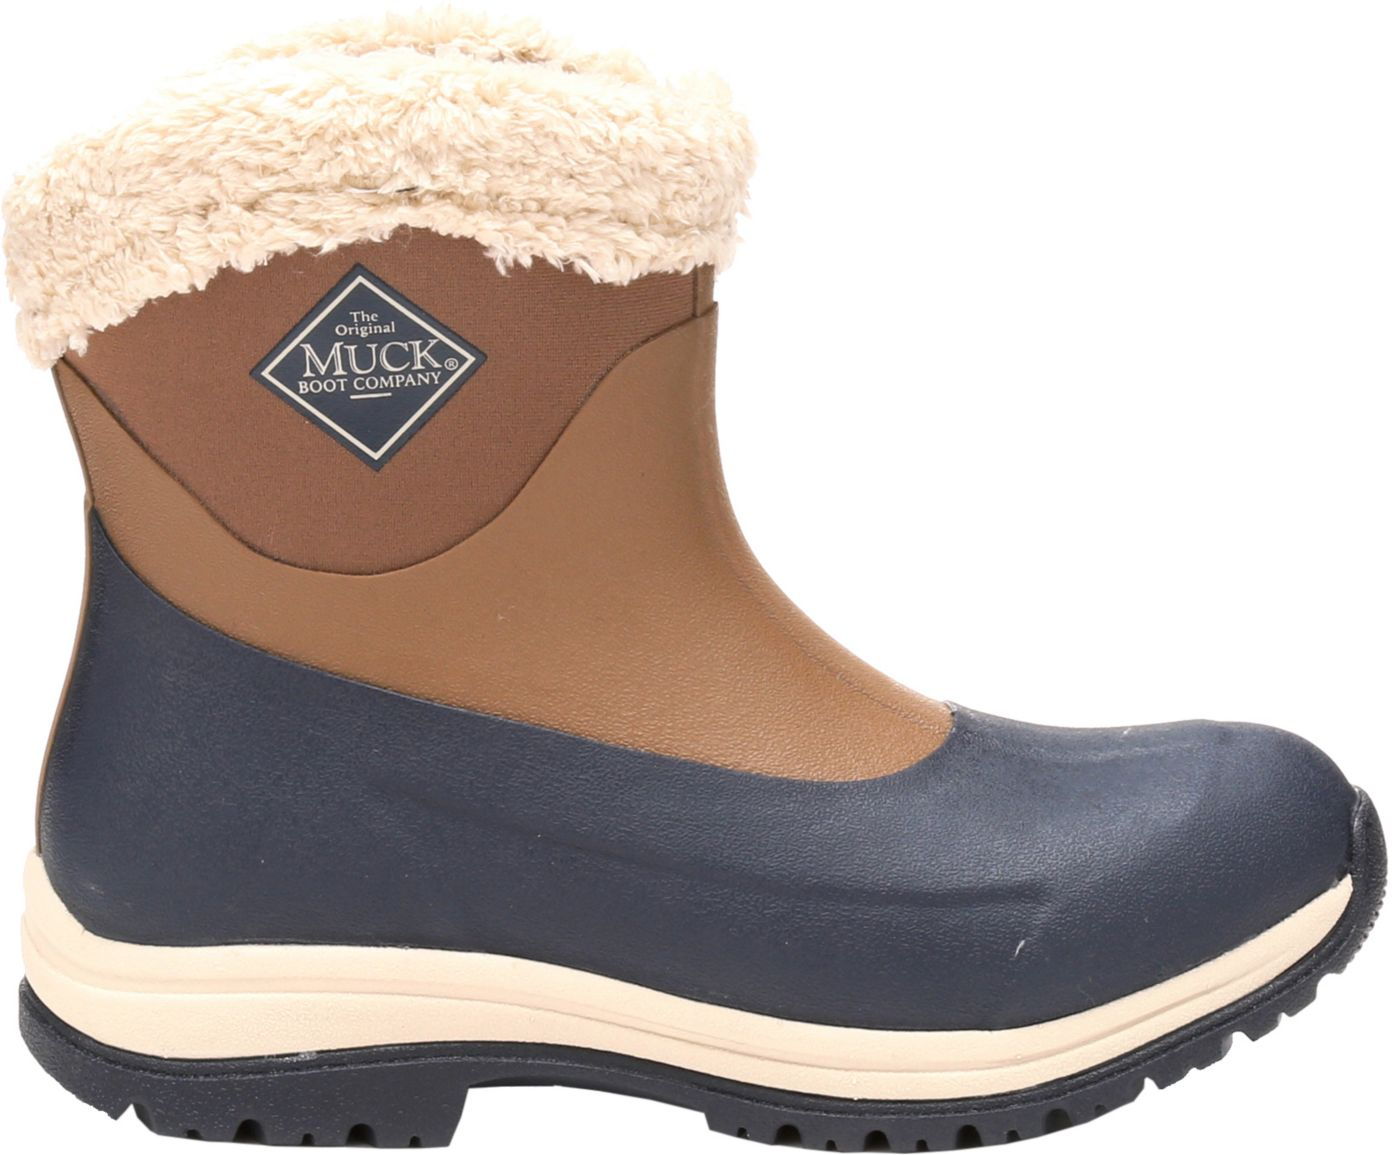 Muck Boots Women's Arctic Après Waterproof Winter Boots